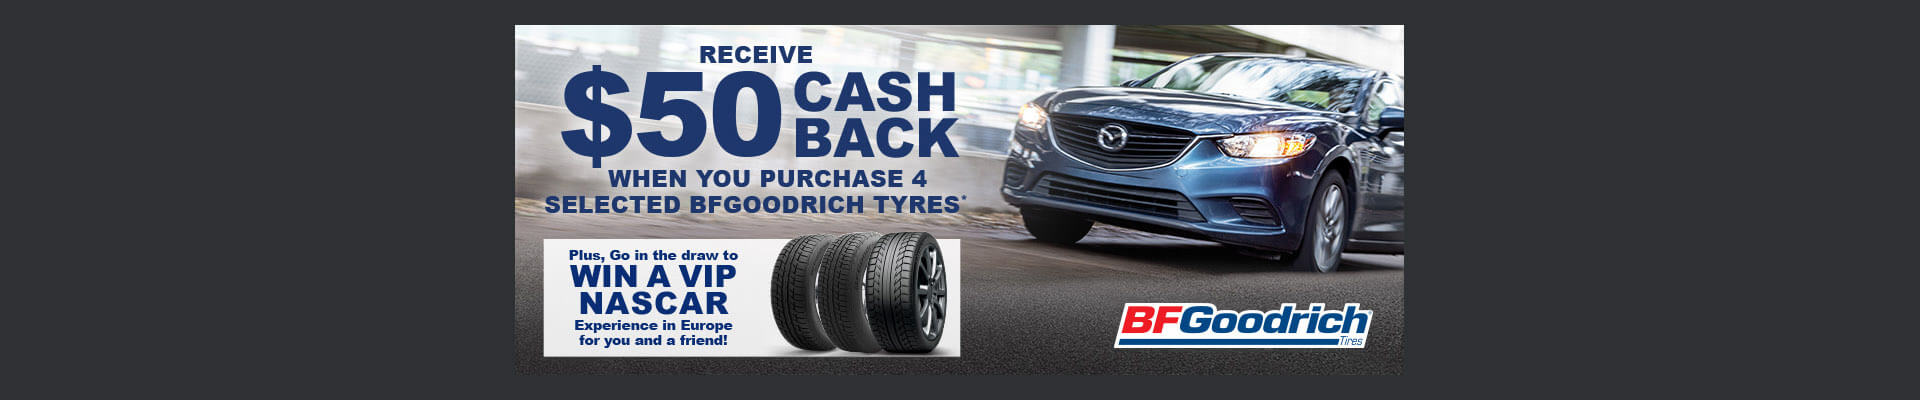 $50 cash back on BFGoodrich tyres